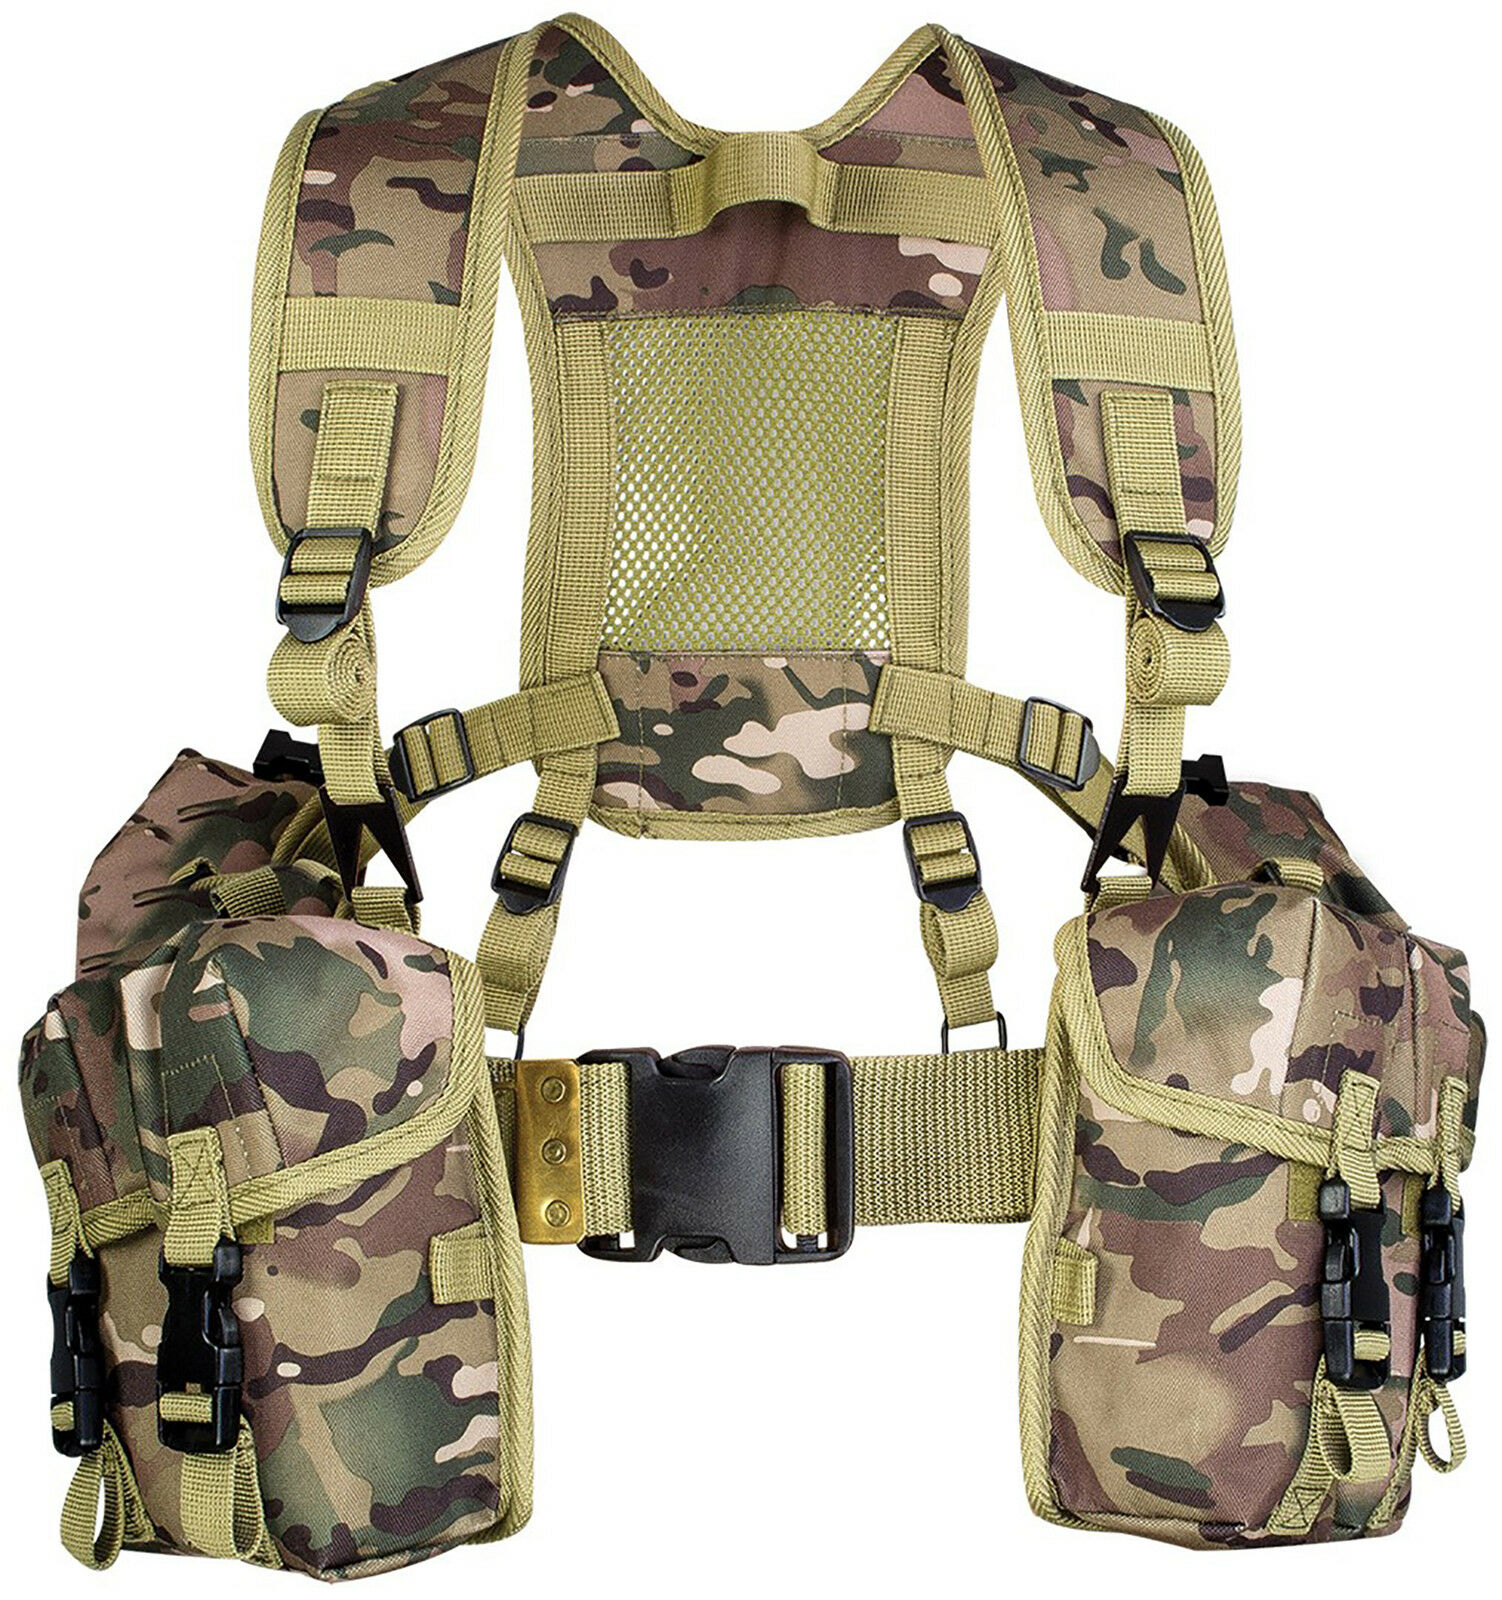 HIGHLANDER Full Set of PLCE British Military Webbing - HMTC Camo - MTP Match